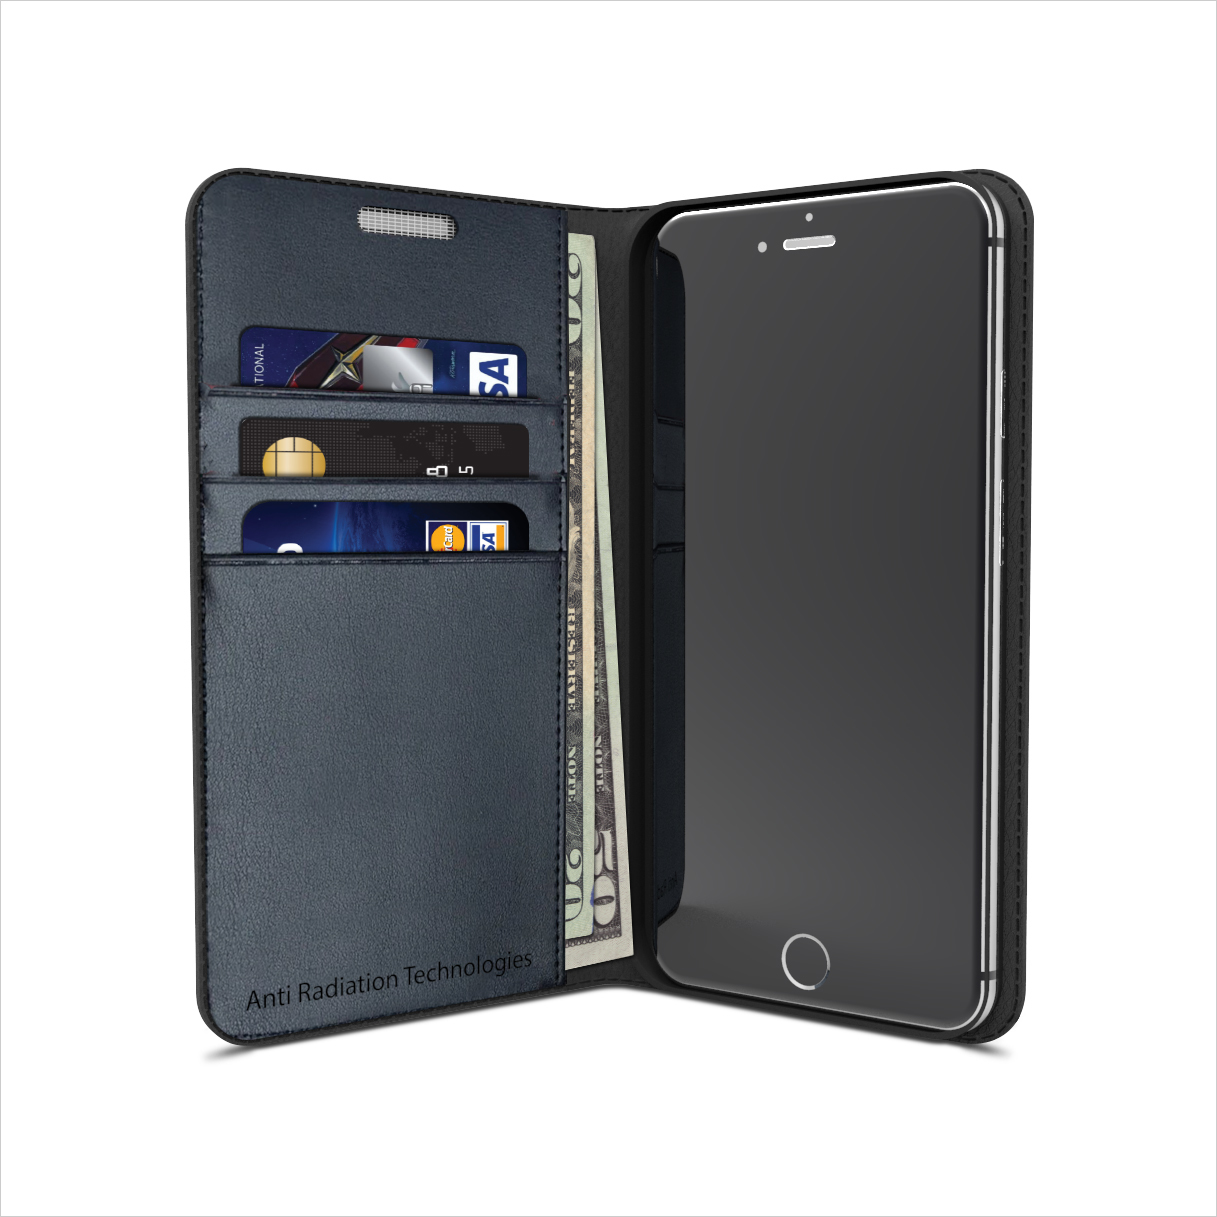 vest Anti-Radiation Wallet Case for iPhone 7 PLUS & iPhone 8 PLUS 00293